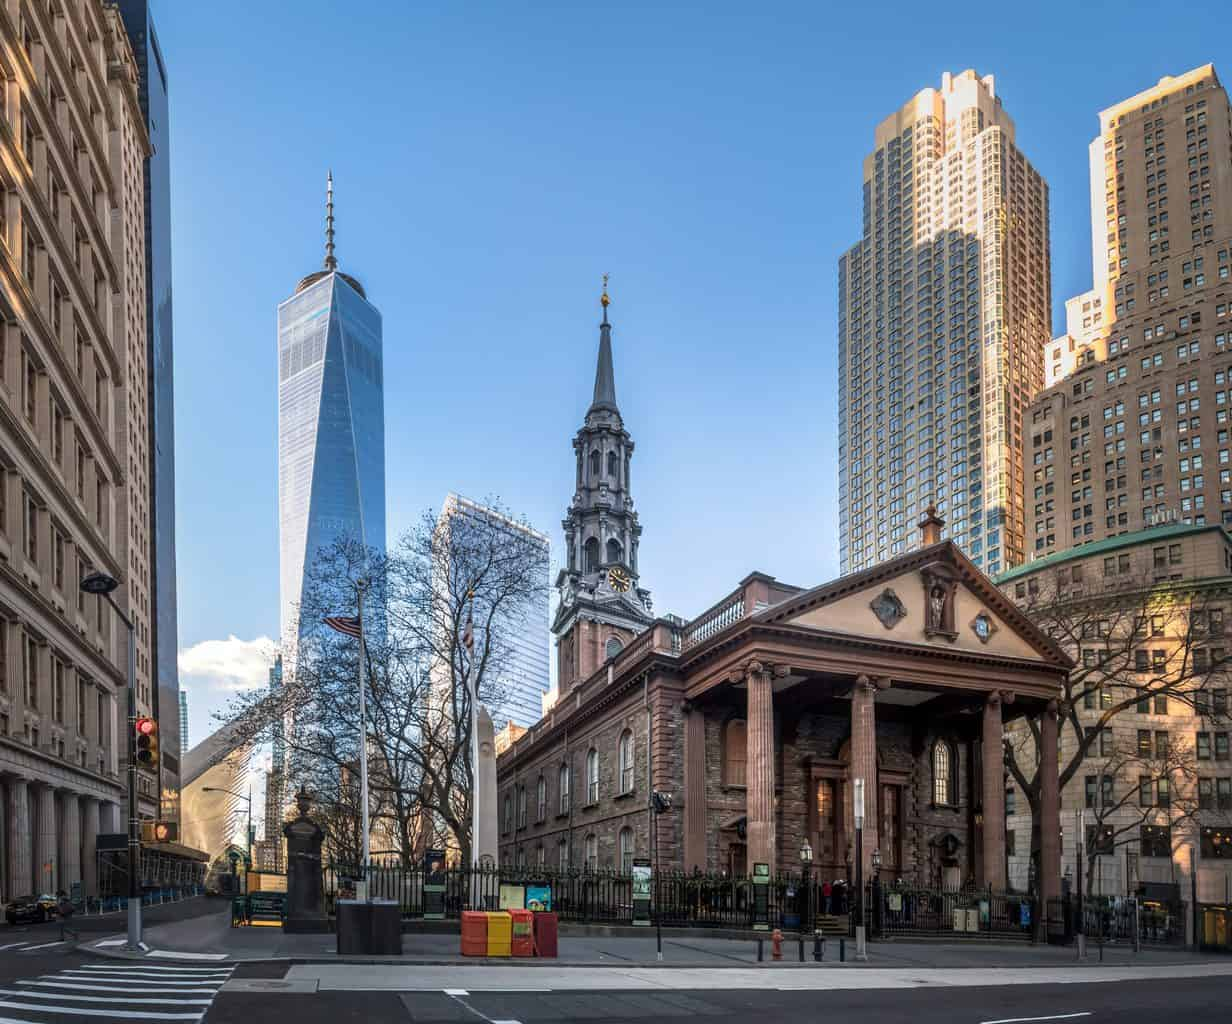 St. Paul's Cathedral quietly sits in Lower Manhattan with One World Trade Center standing tall in the background.